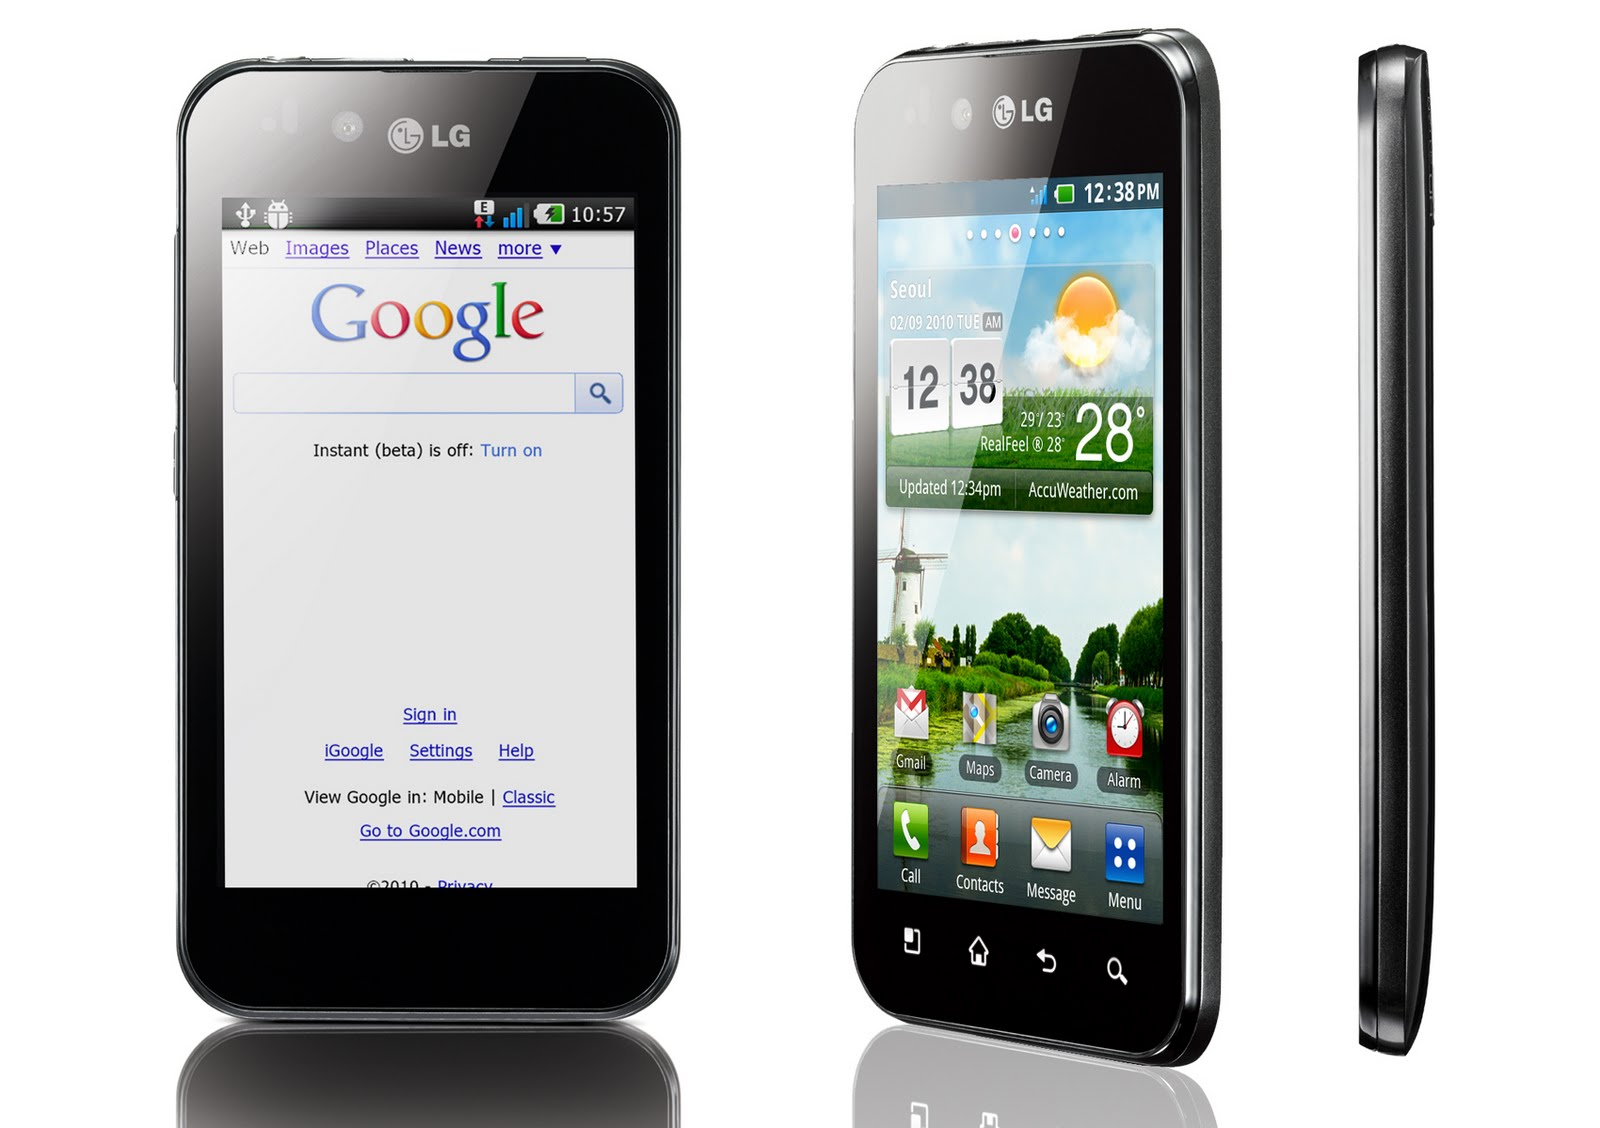 Harga LG Optimus Black P970 Full Spesifikasi